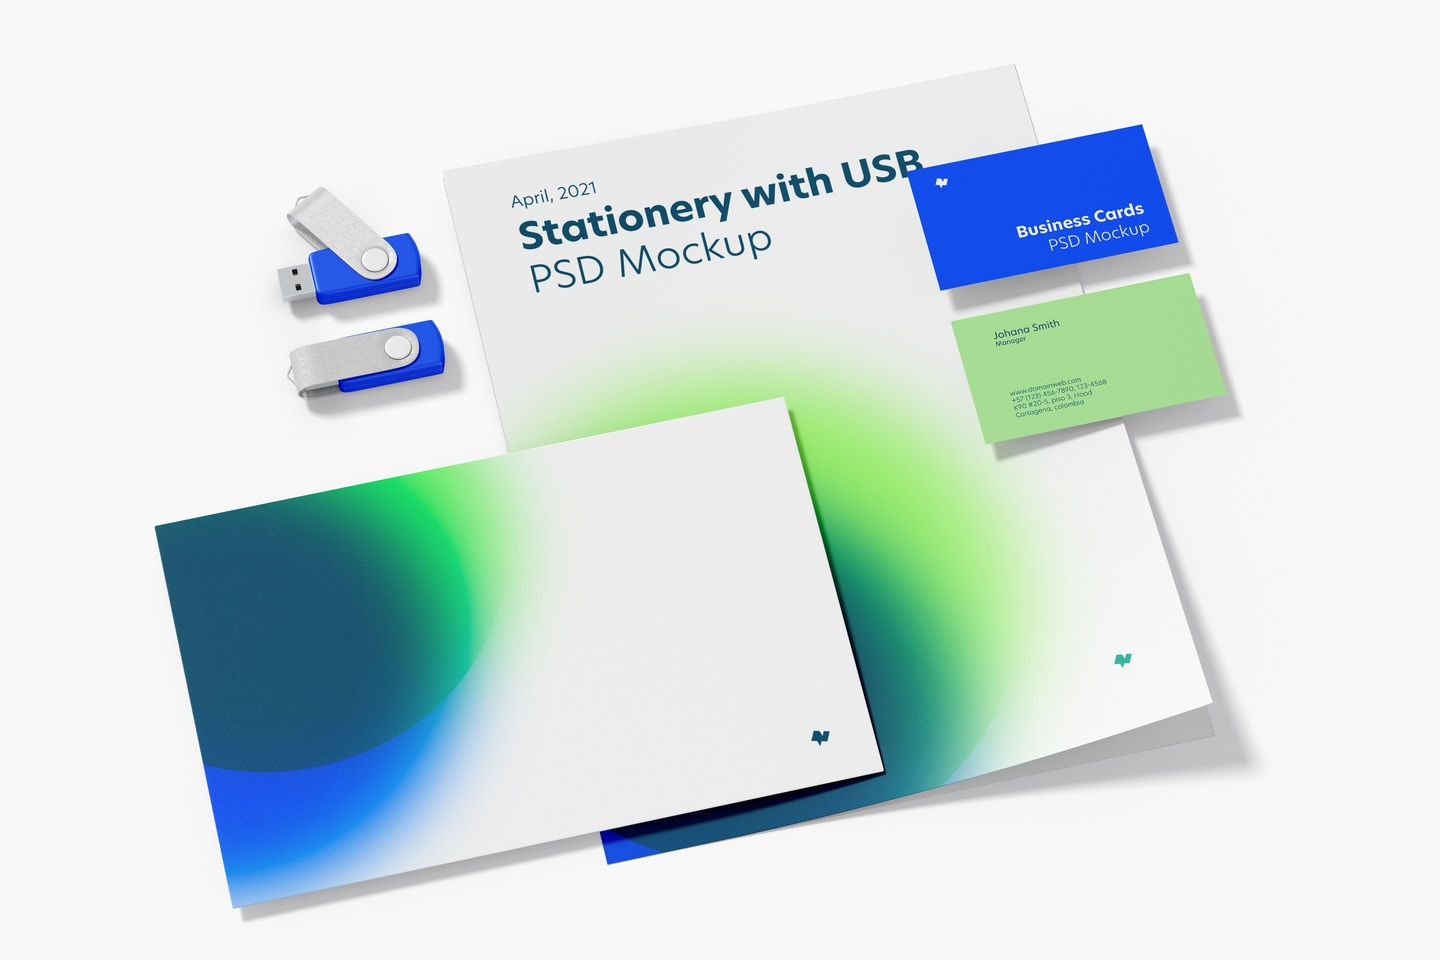 Stationery with USB Flash Drives Mockup, Perspective